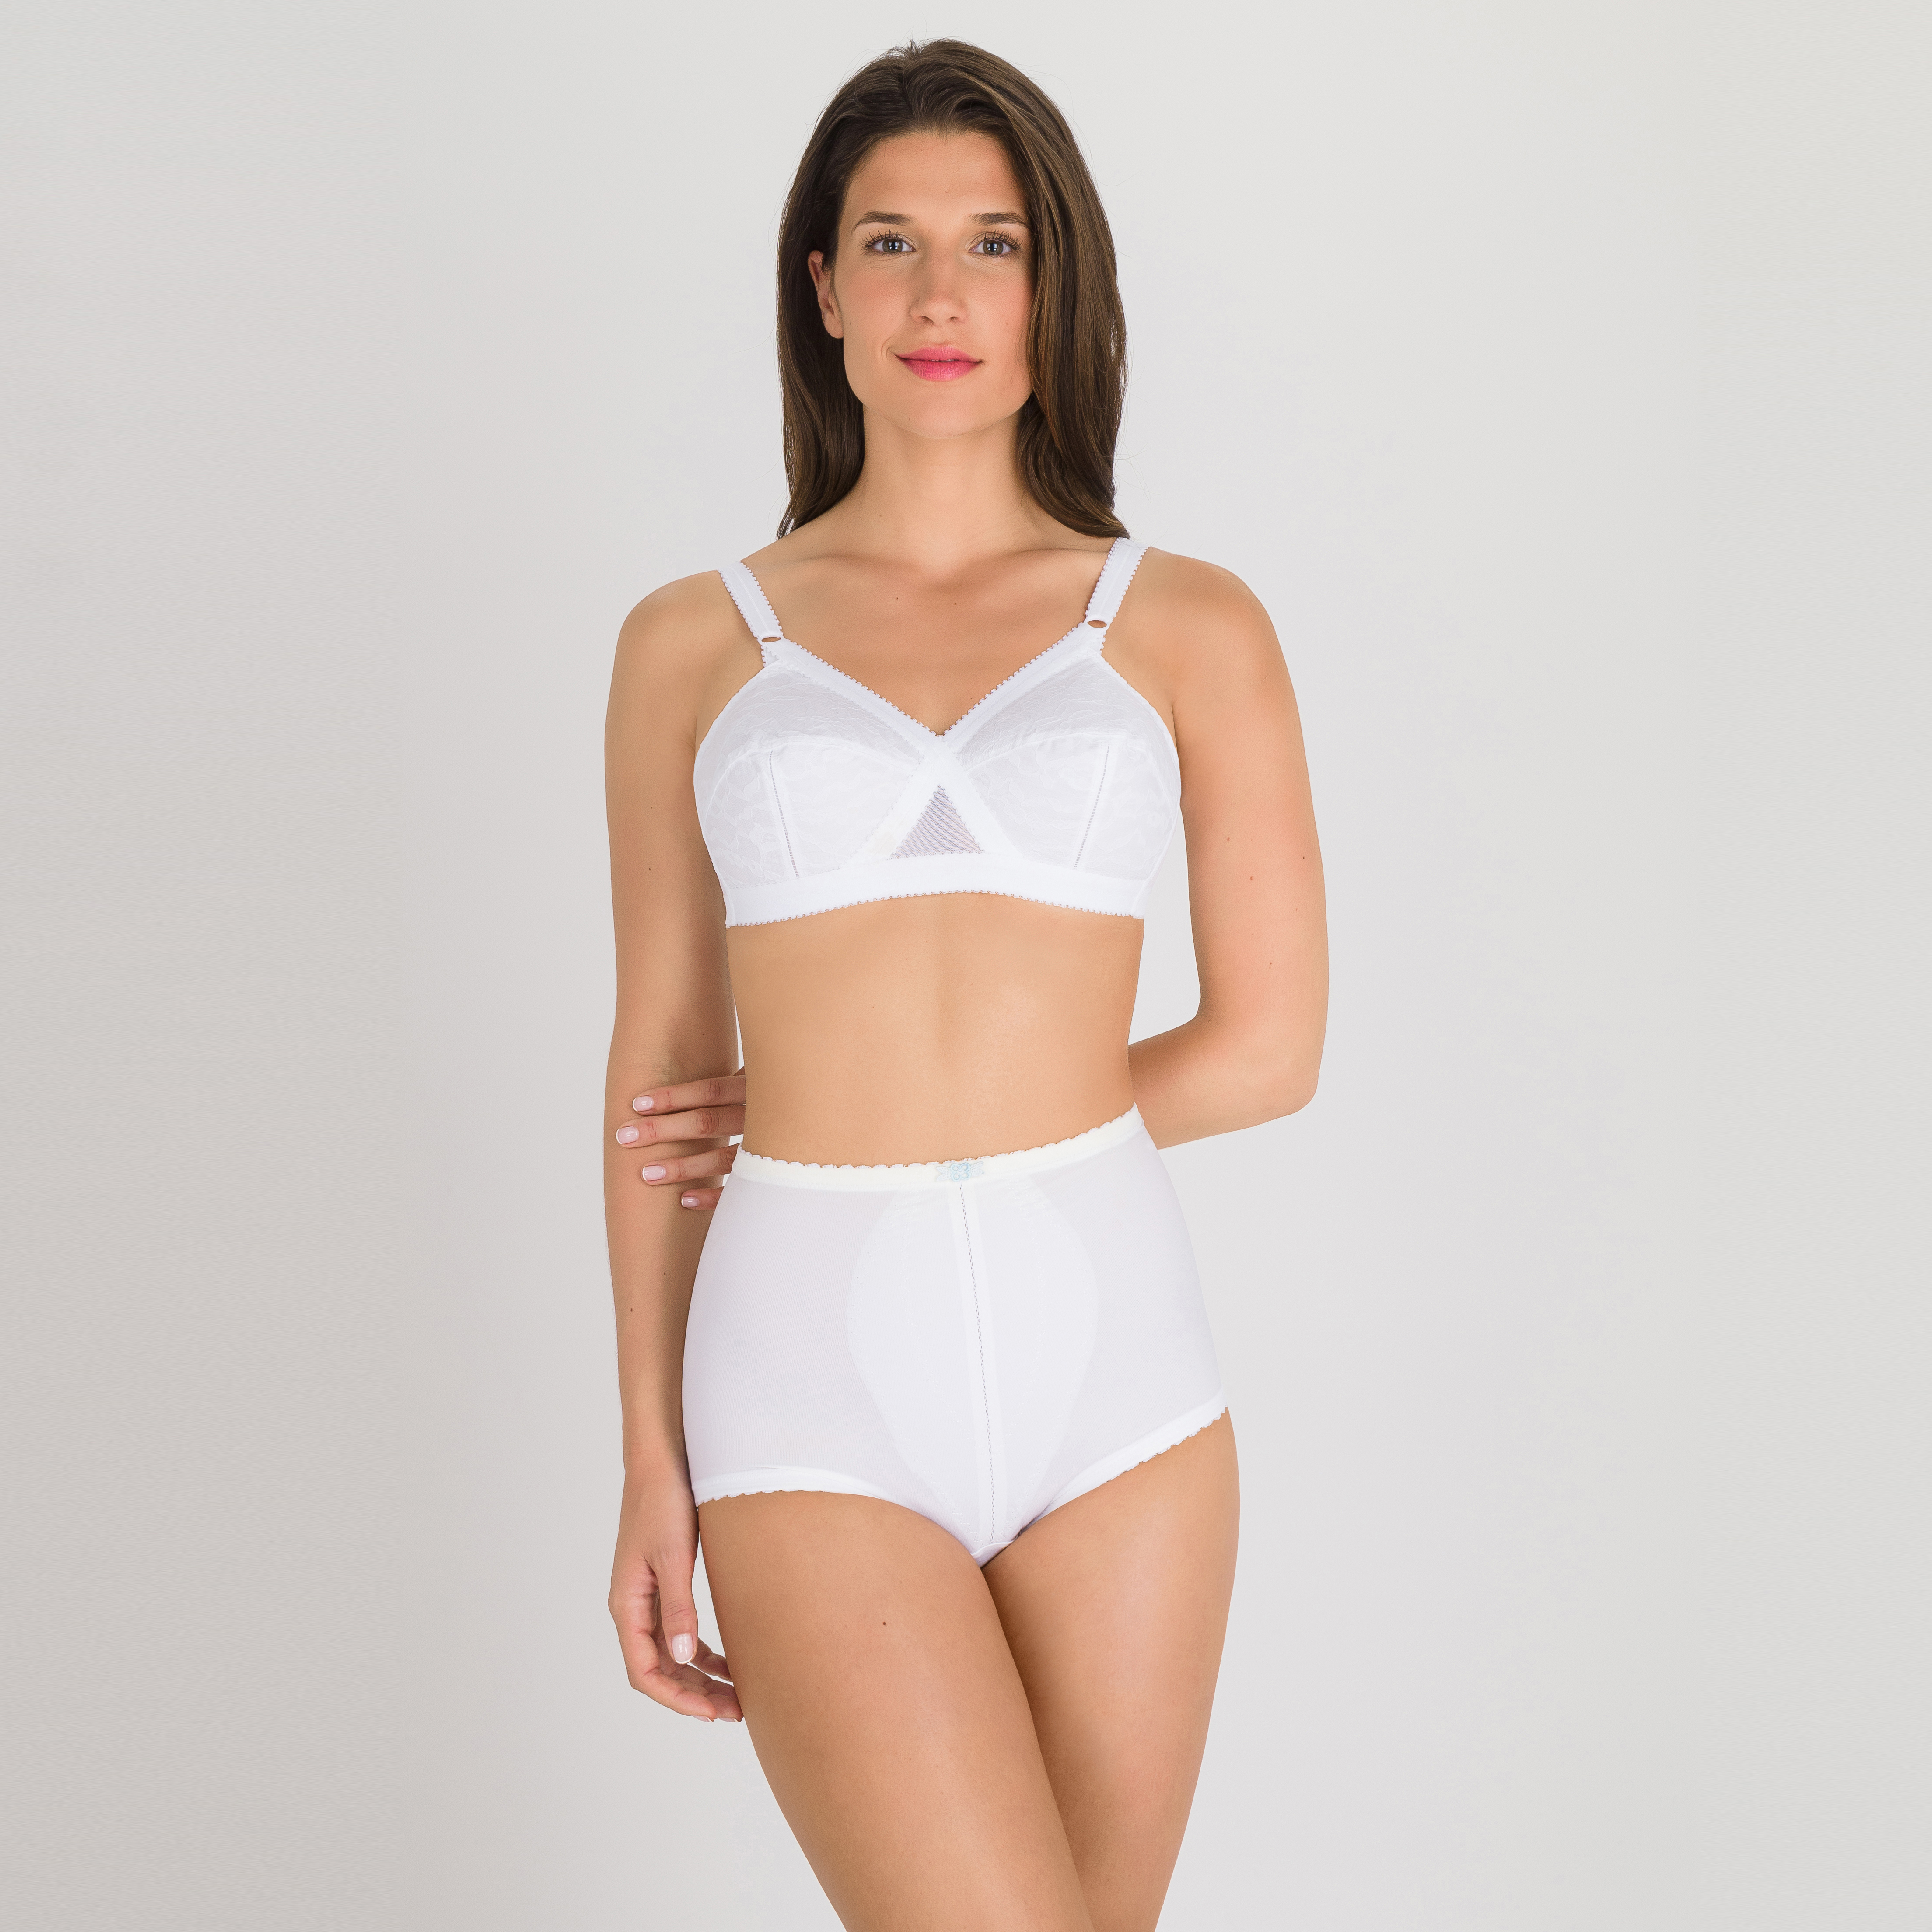 Control Briefs in White - ICBIAG, , PLAYTEX